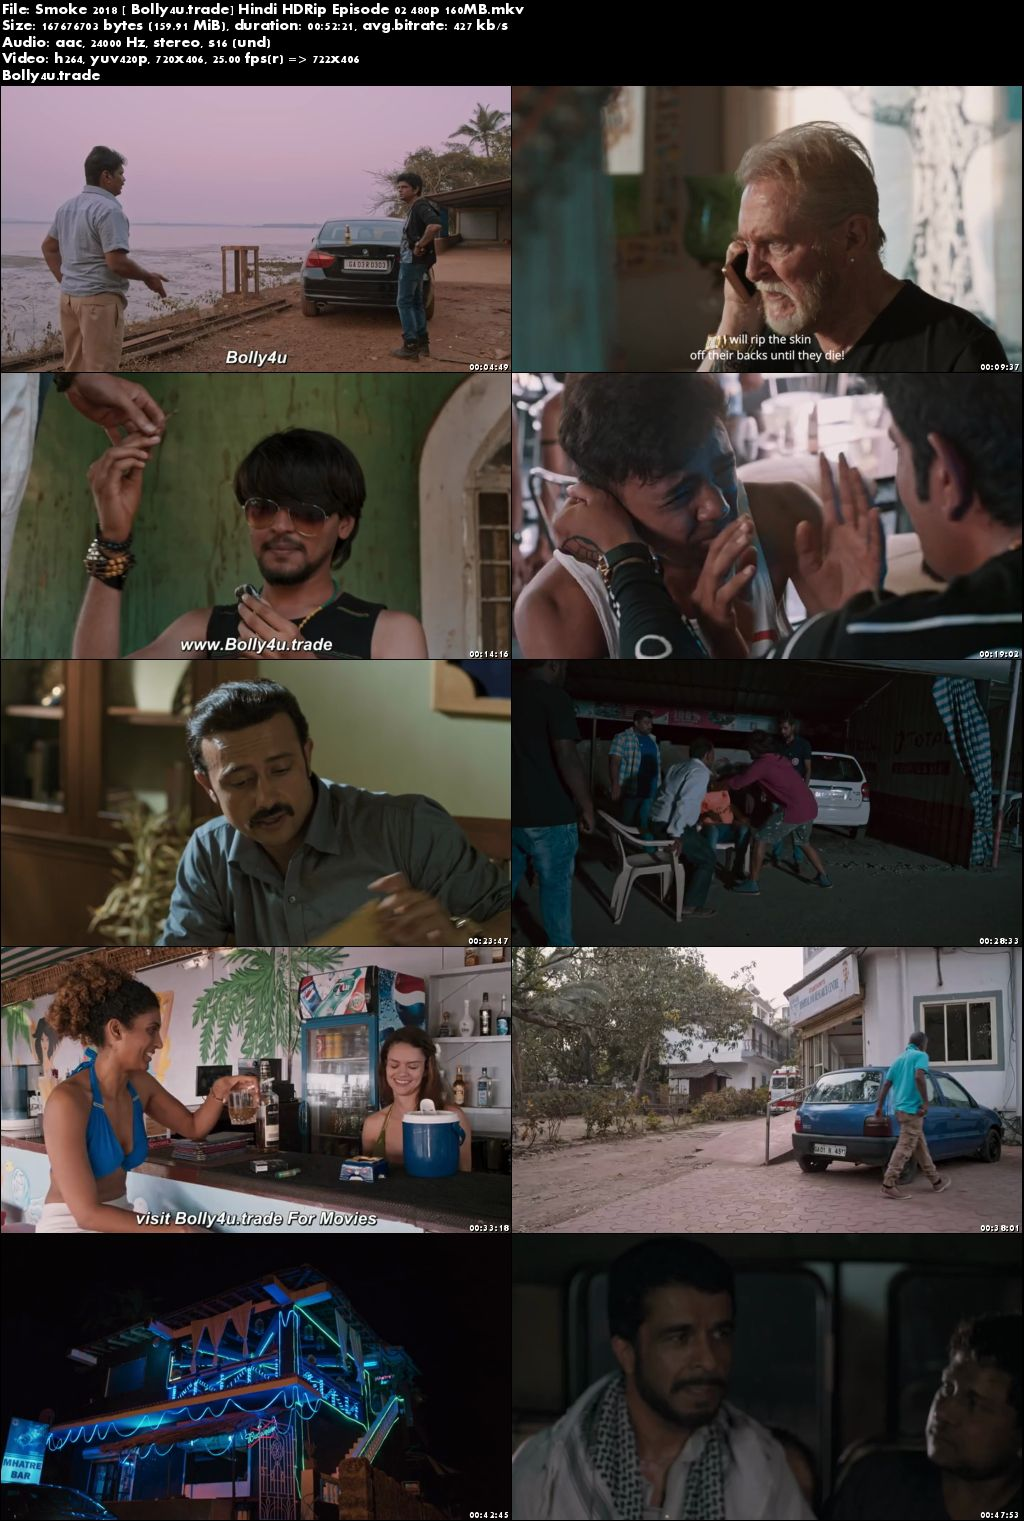 Smoke 2018 HDRip 160MB Episode 02 Hindi 480p ESub Download